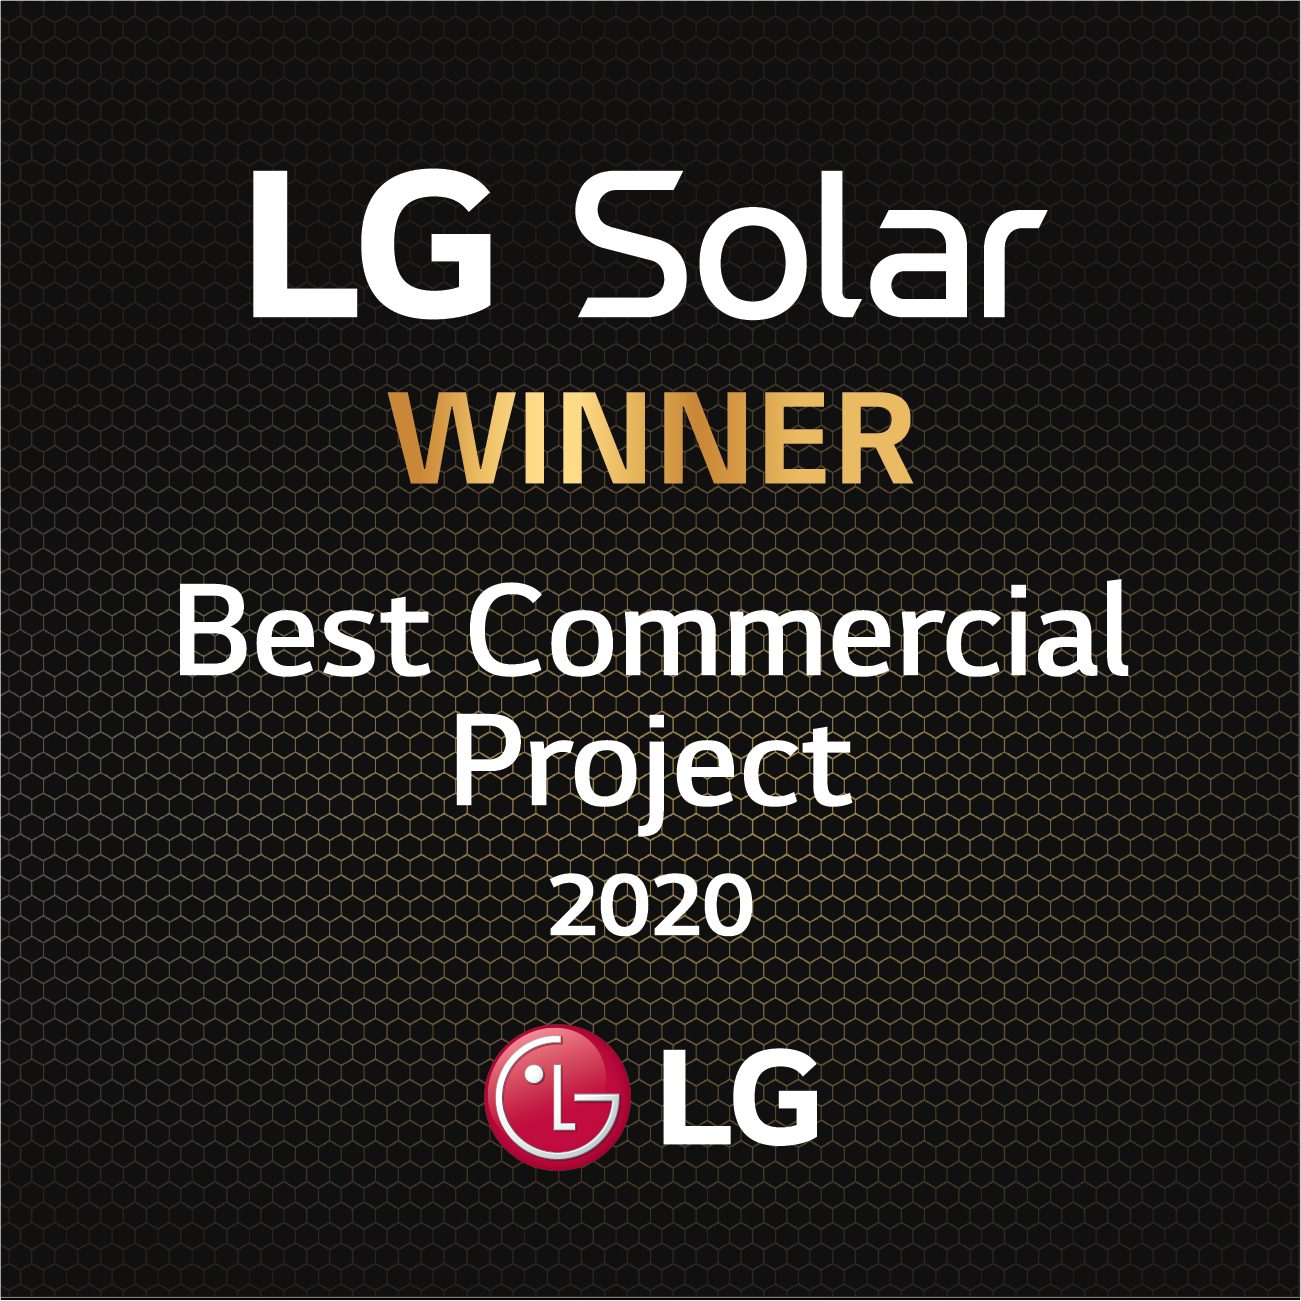 LG National Award for BEST COMMERCIAL PROJECT of 2020 - featured image